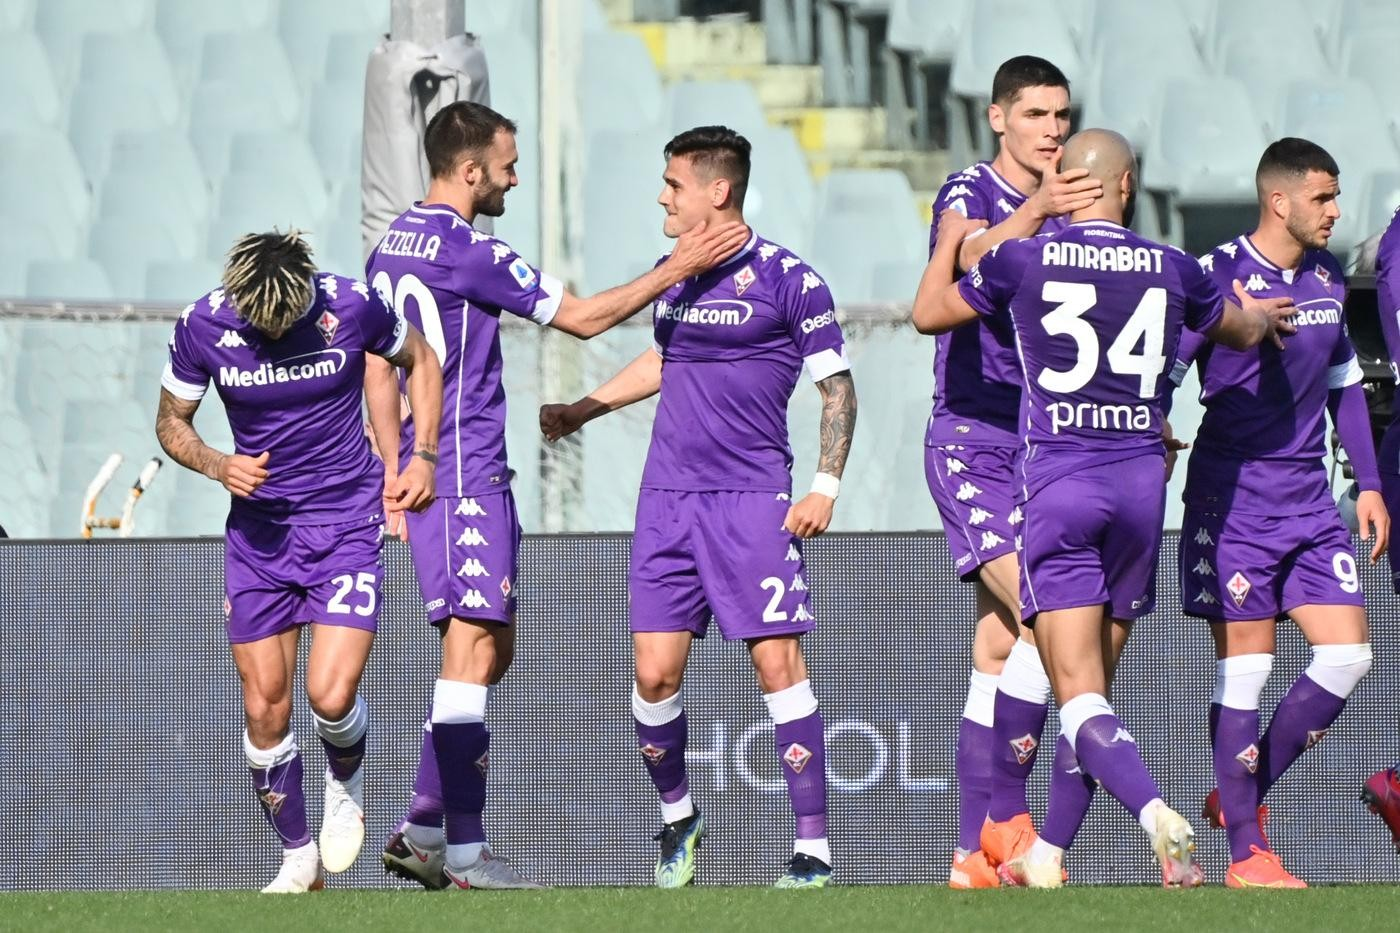 FIORENTINA EASE PAST OSTERMUNCHEN IN FIRST FRIENDLY